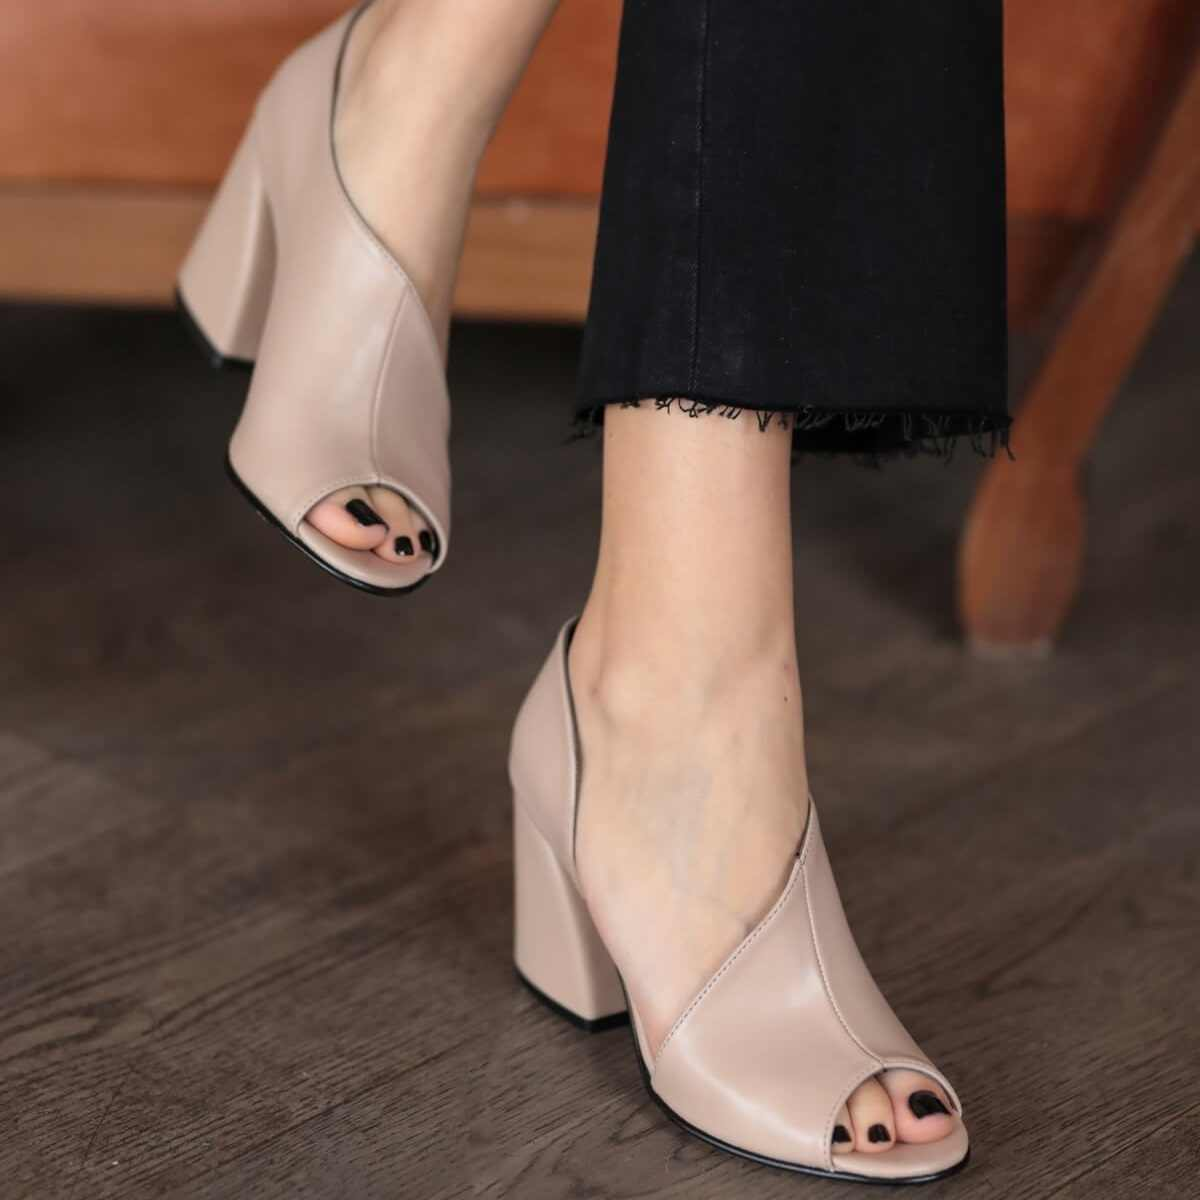 Mio Gusto Brand EVA, Black / Skin / Powder / White / Tan Colors, Top Selling 9Cm Heel-height Women 's Quality Pumps Shoes